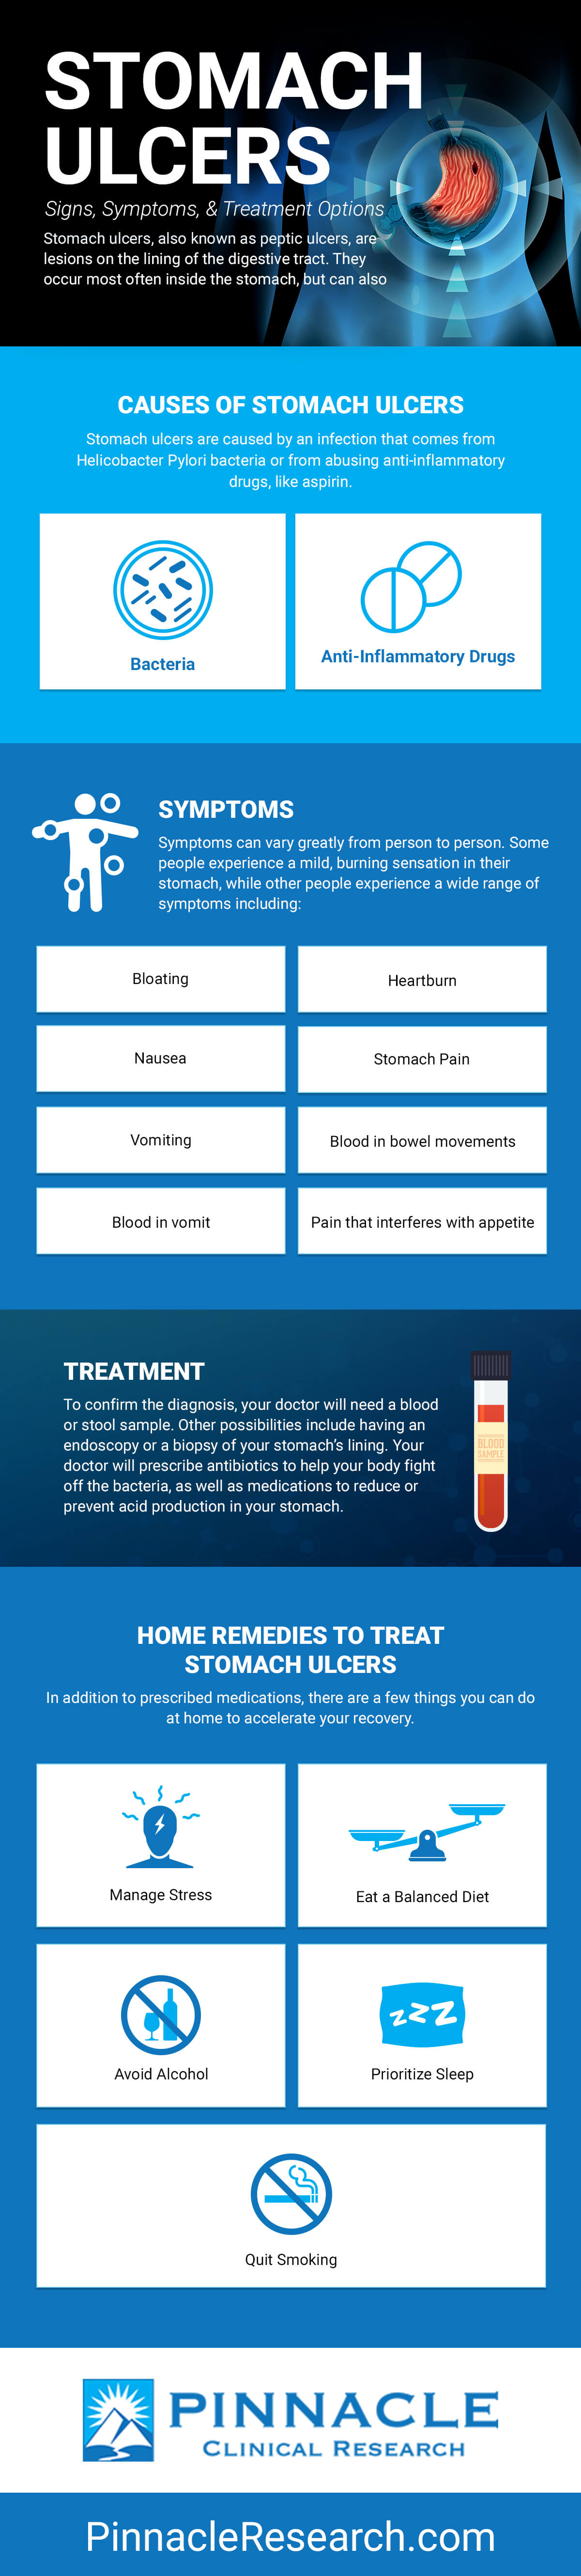 peptic stomach ulcers infographic